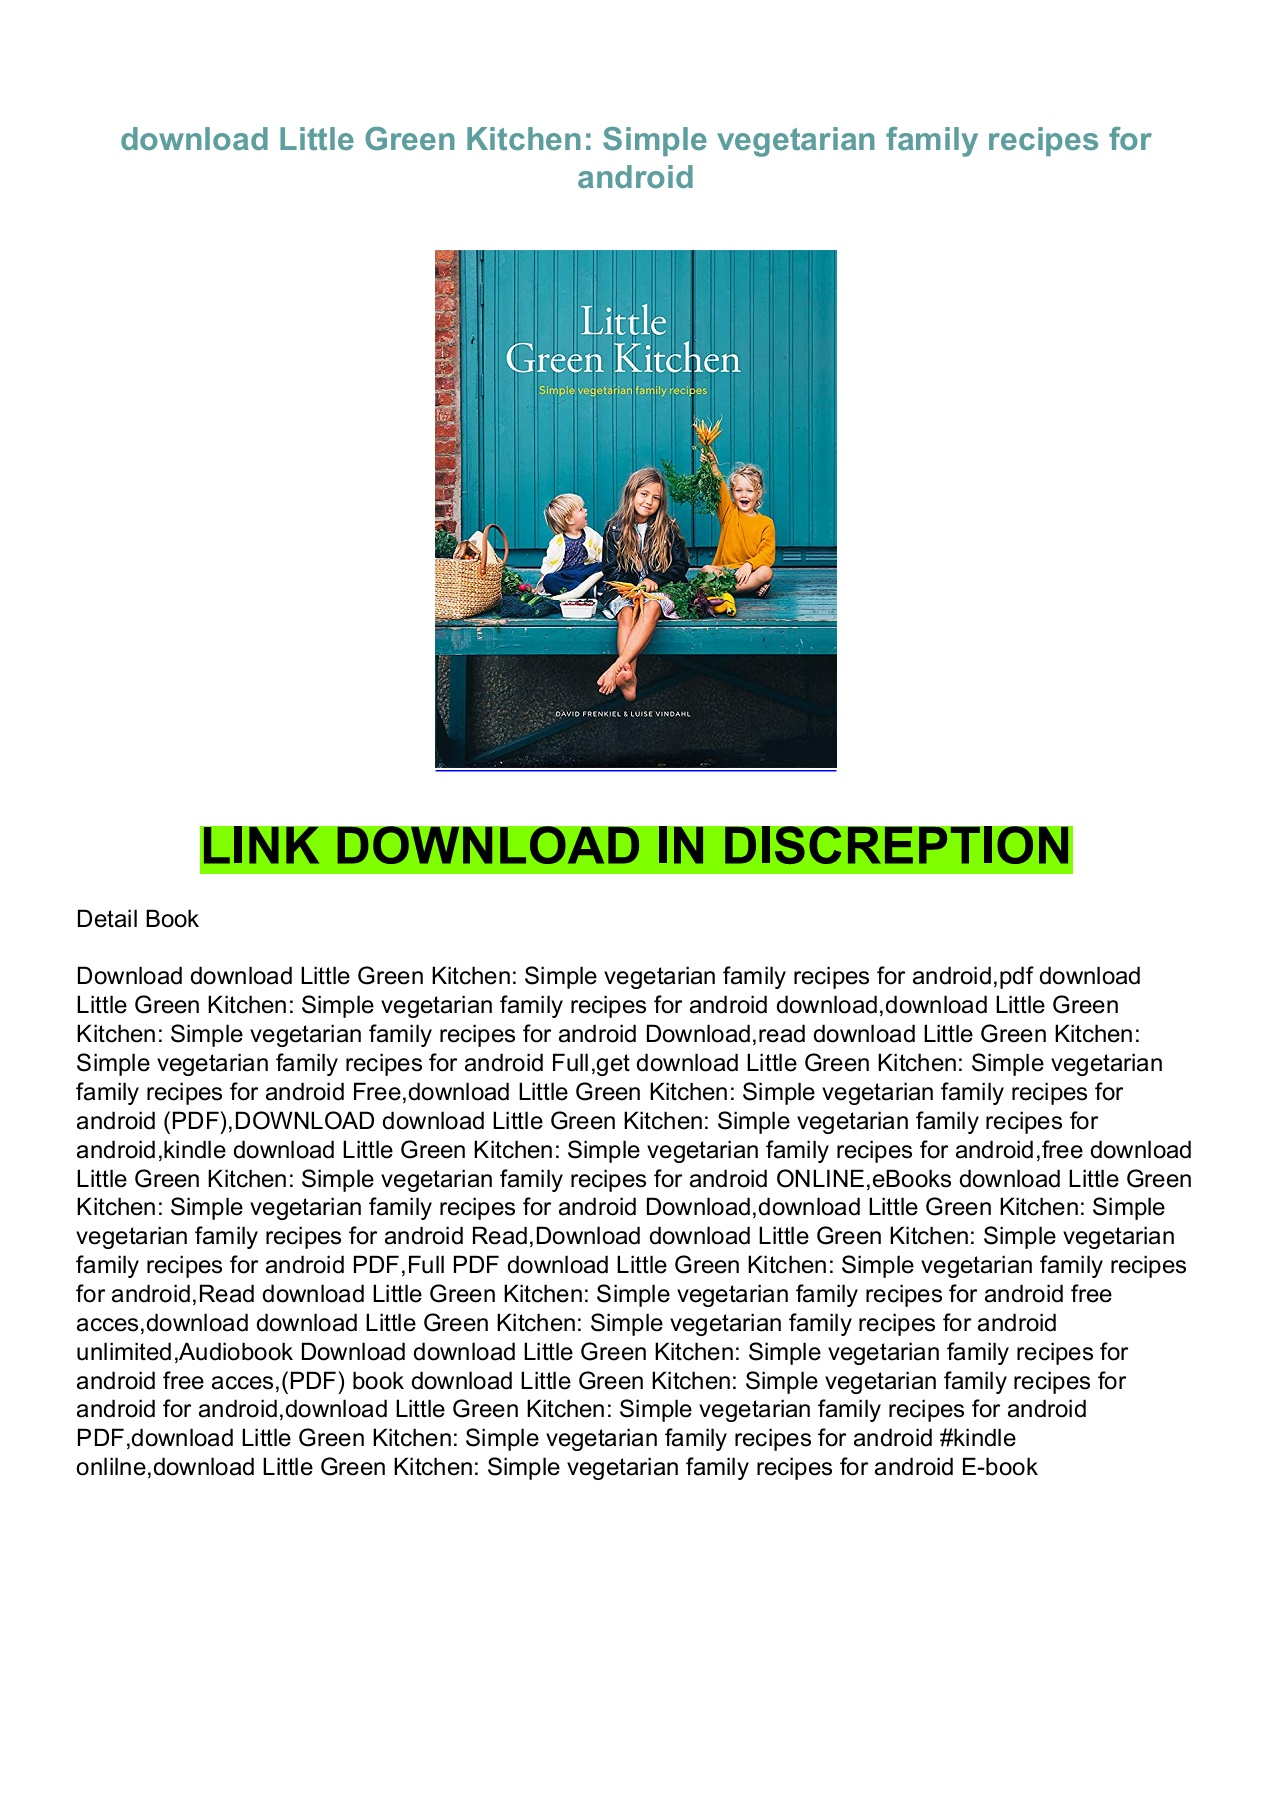 Download Little Green Kitchen Simple Vegetarian Family Recipes For Android